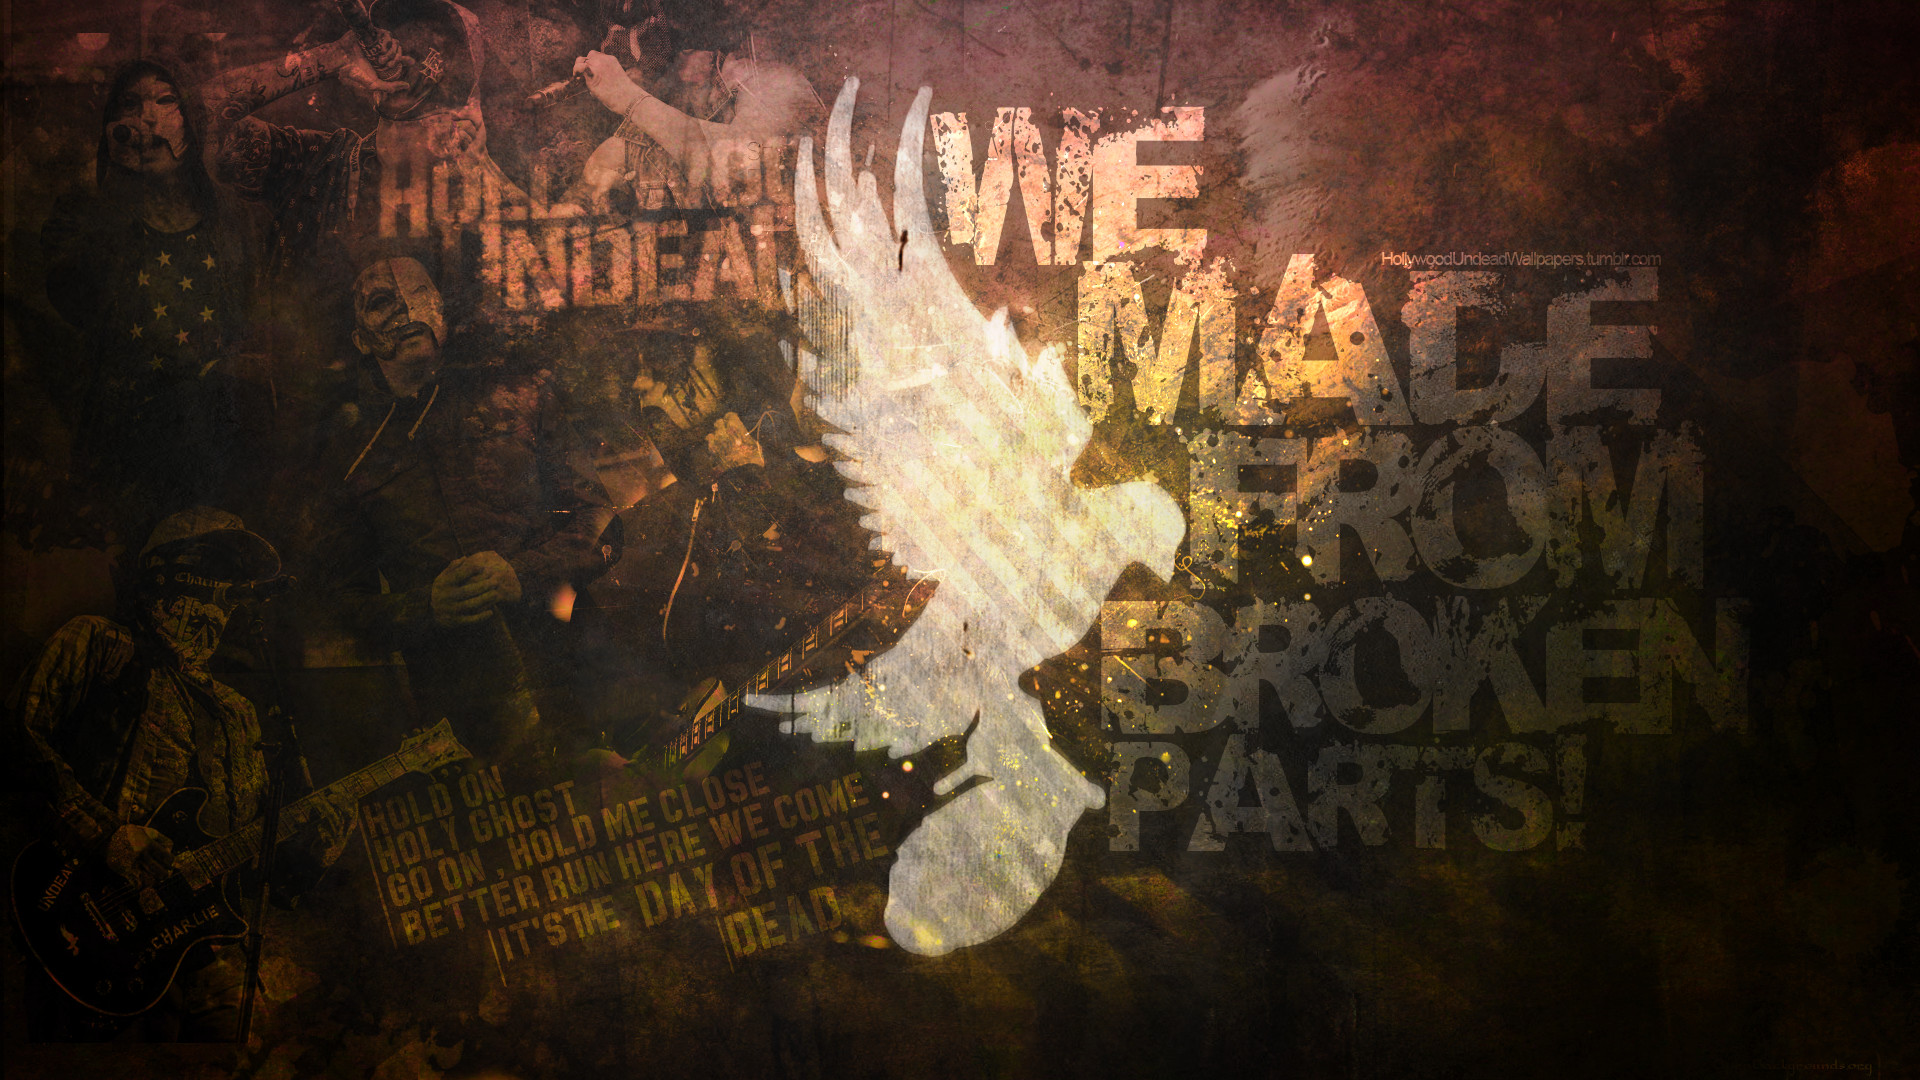 1920x1080 Hollywood Undead - Dove and Grenade Wallpaper by emirulug on .